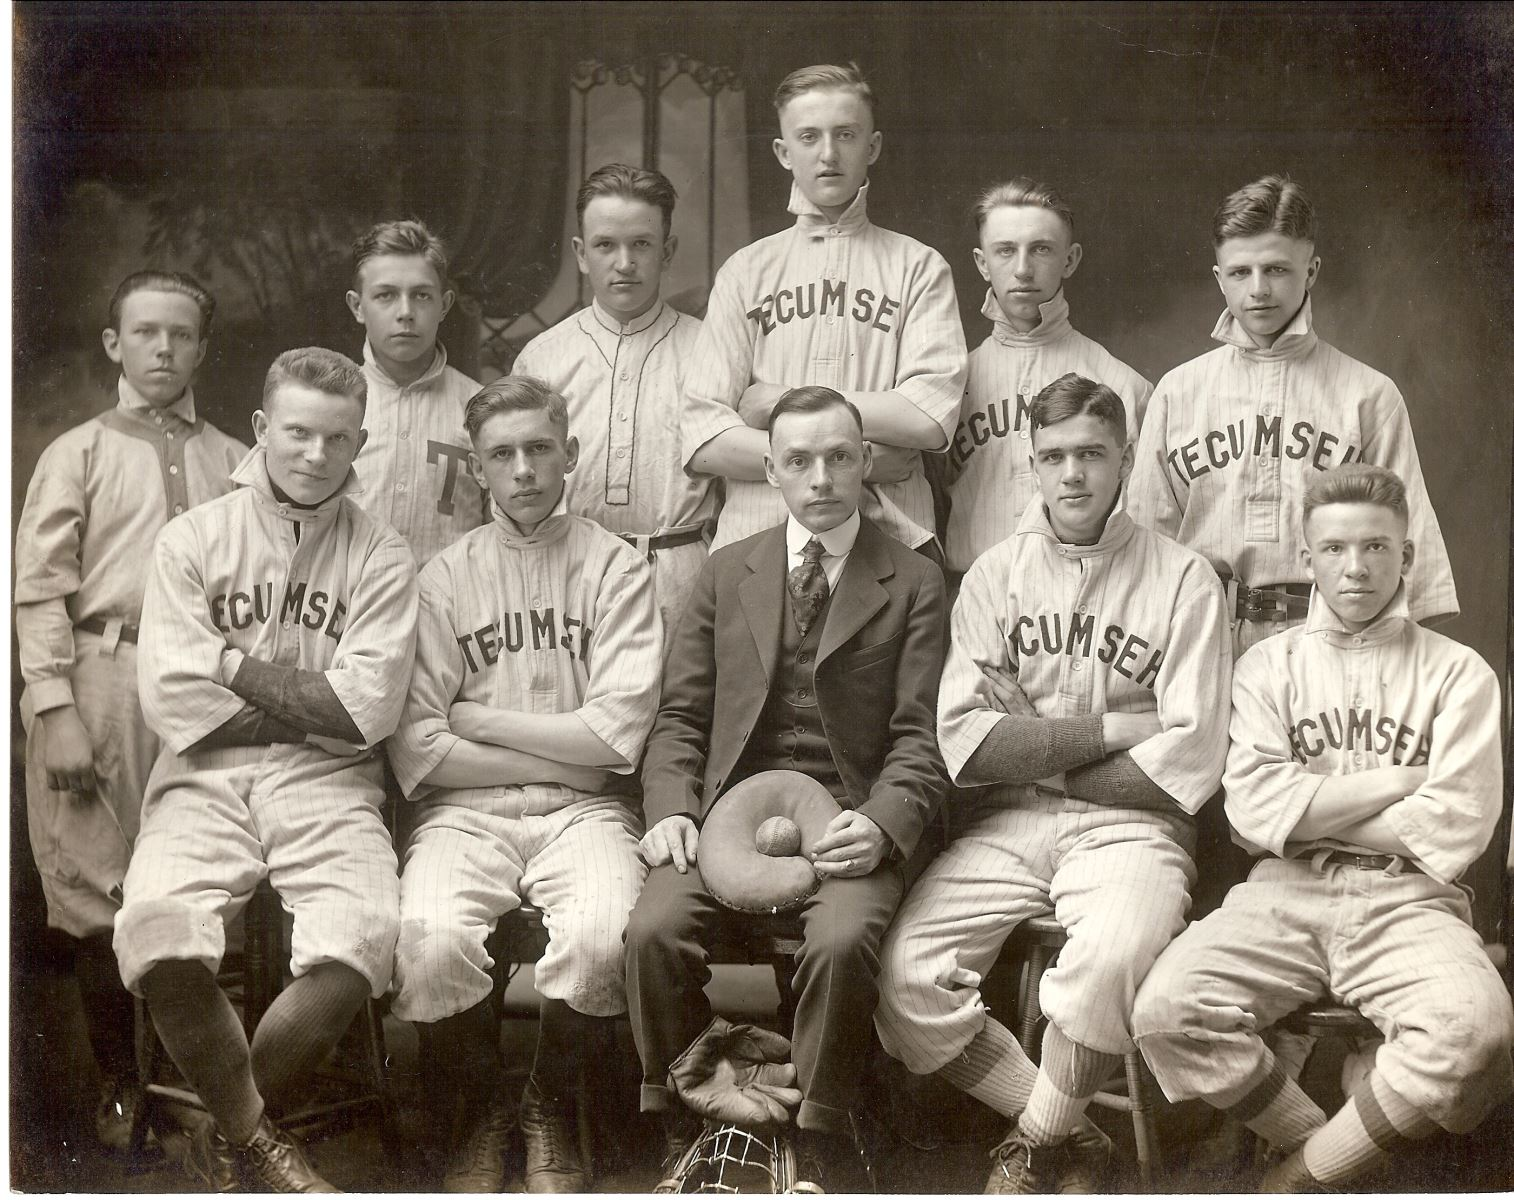 An old photograph of baseball players